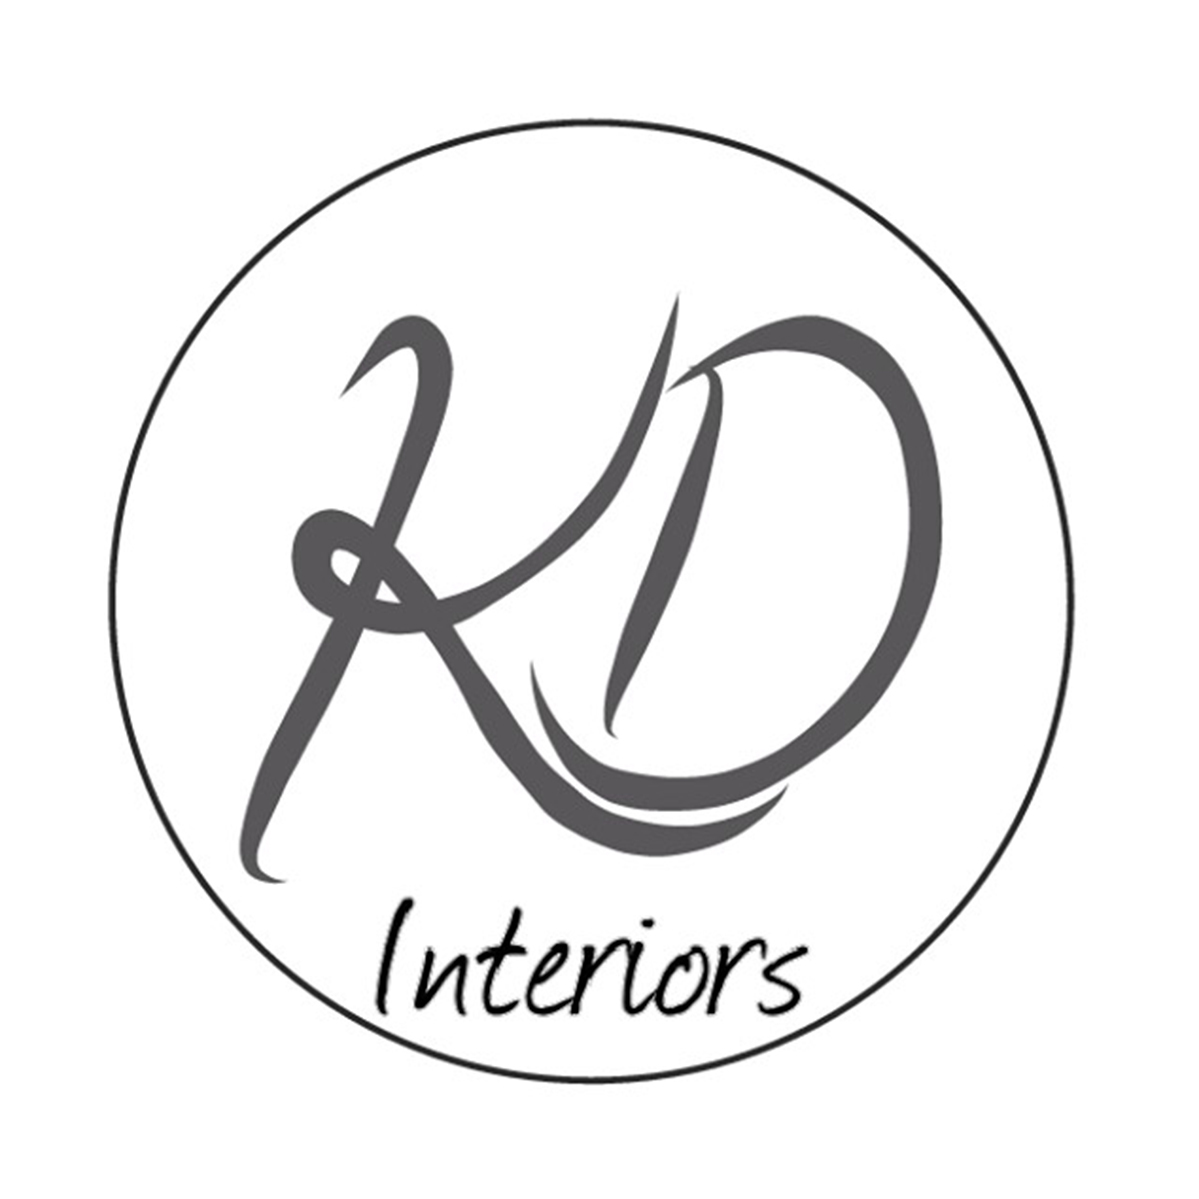 KD Interiors Newberg Oregon